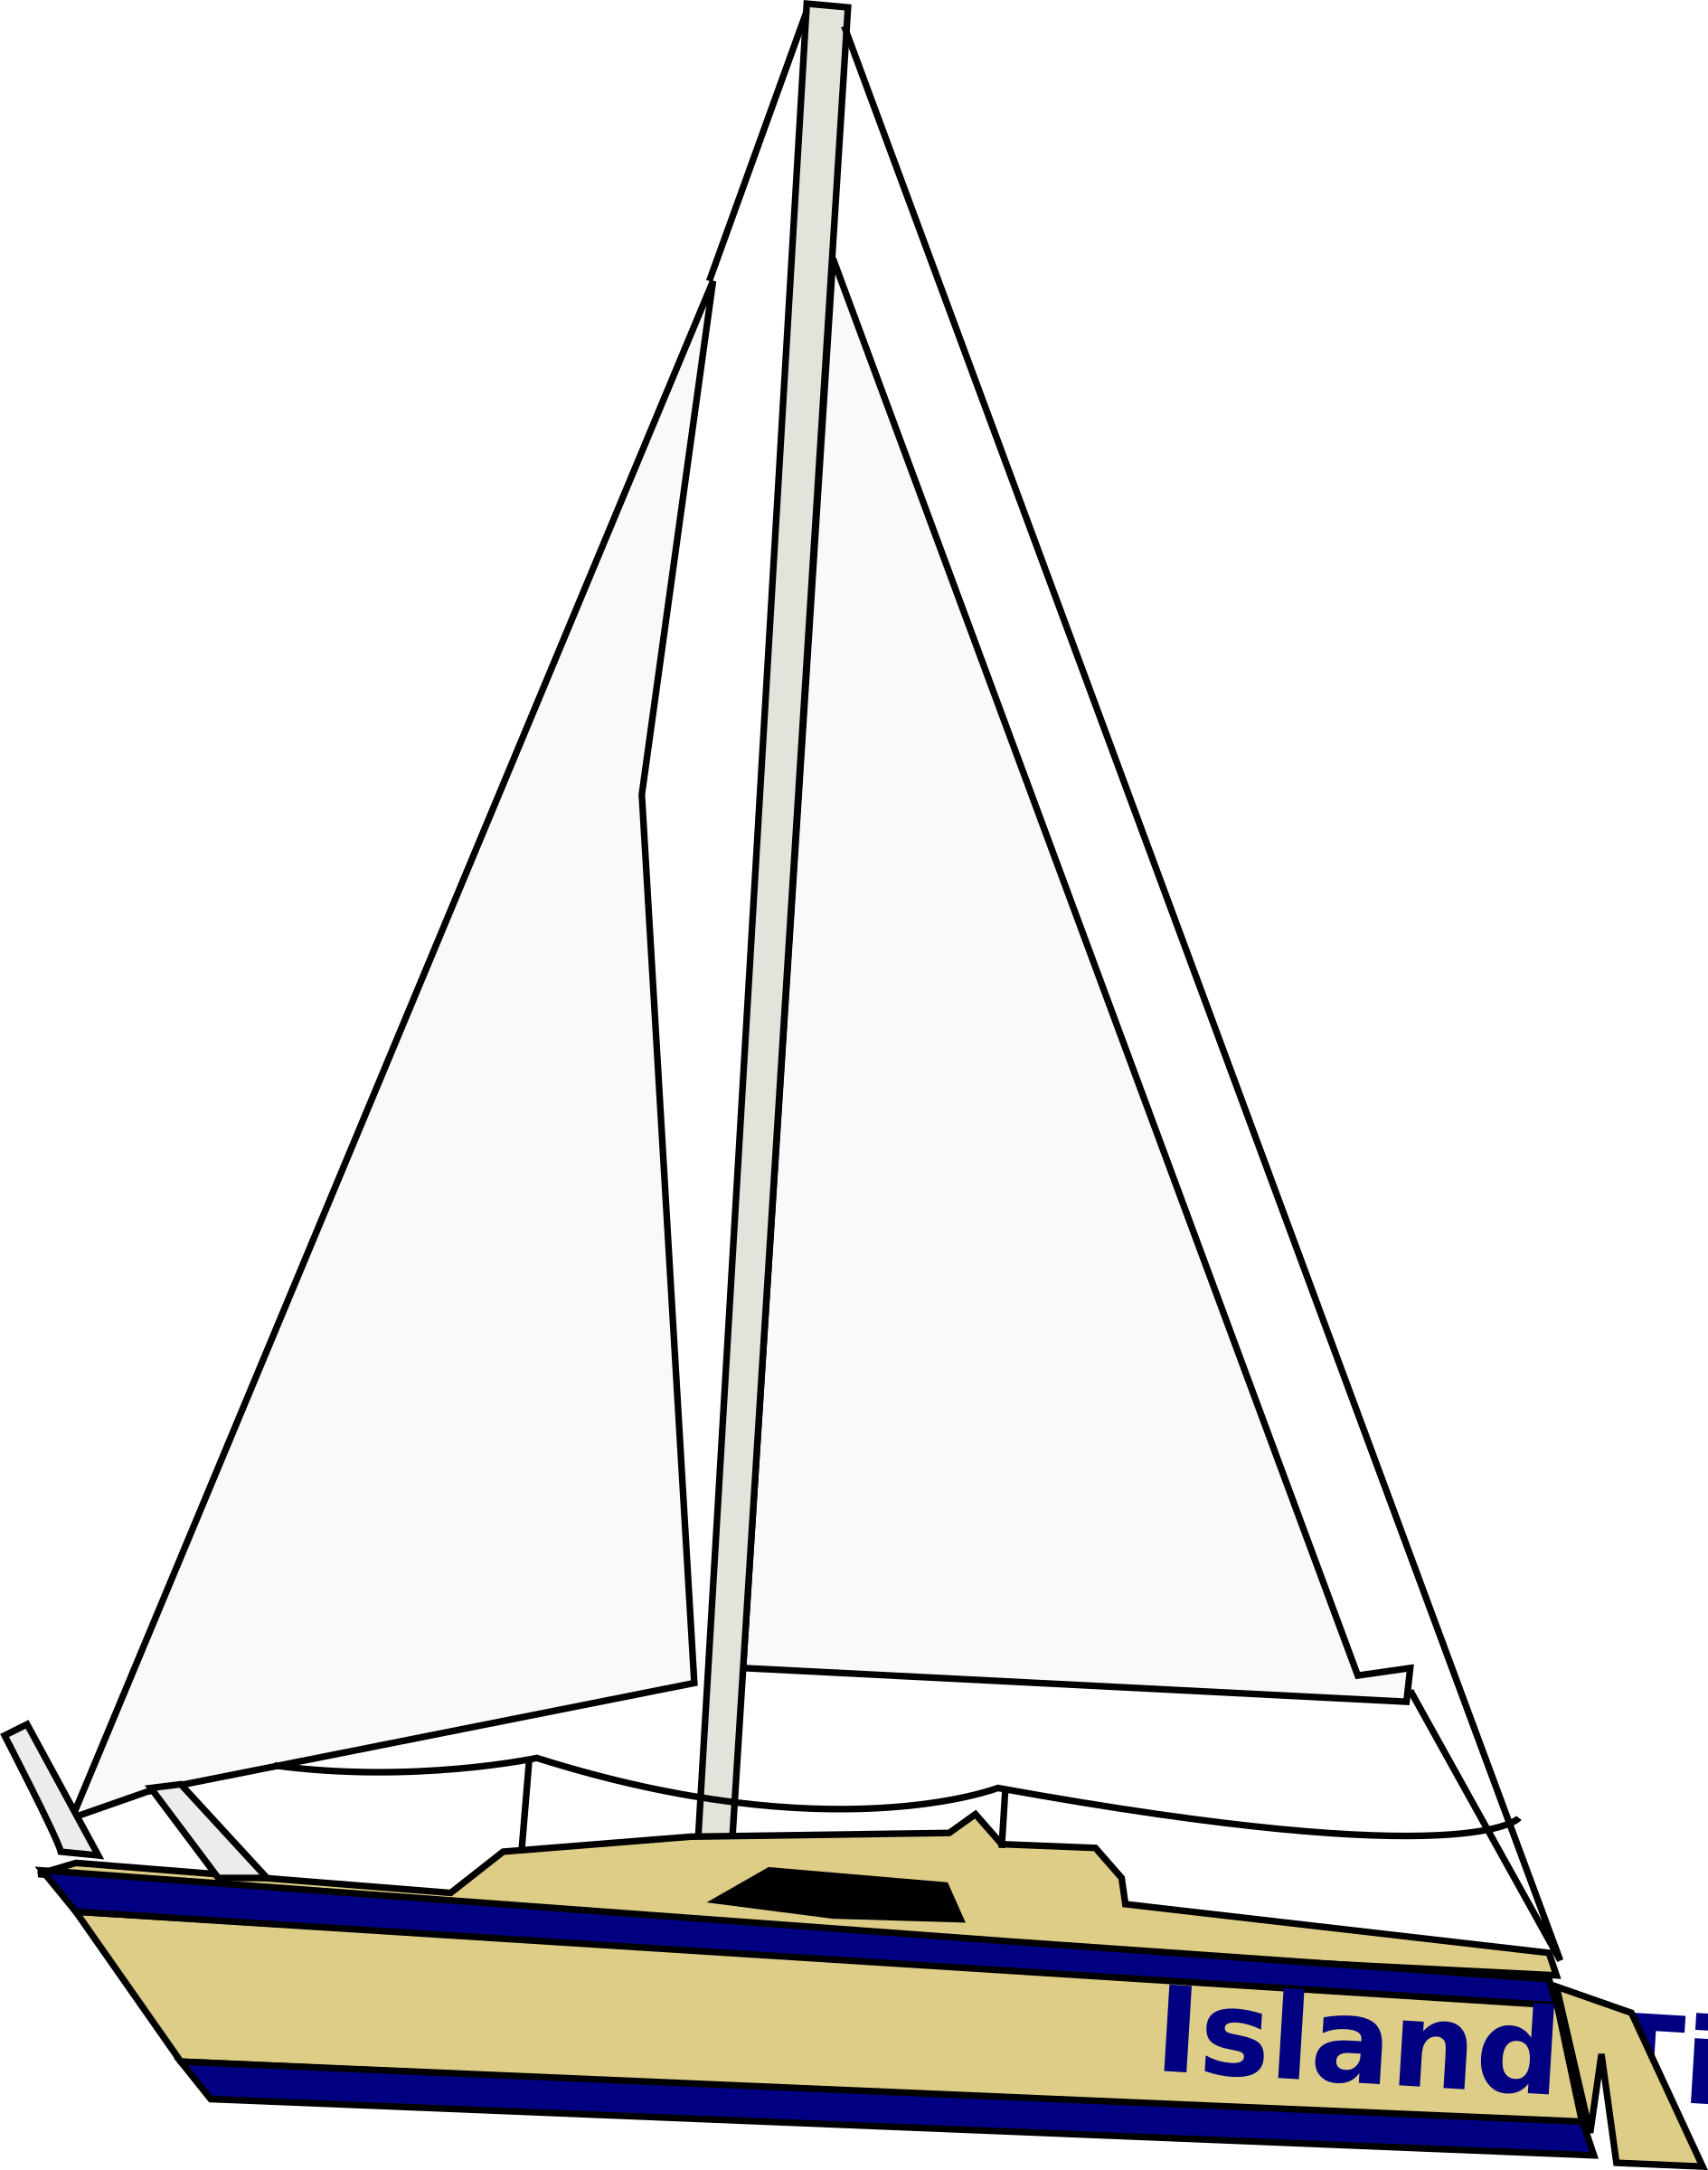 banner freeuse Island time sailboat image. Yacht clipart big boat